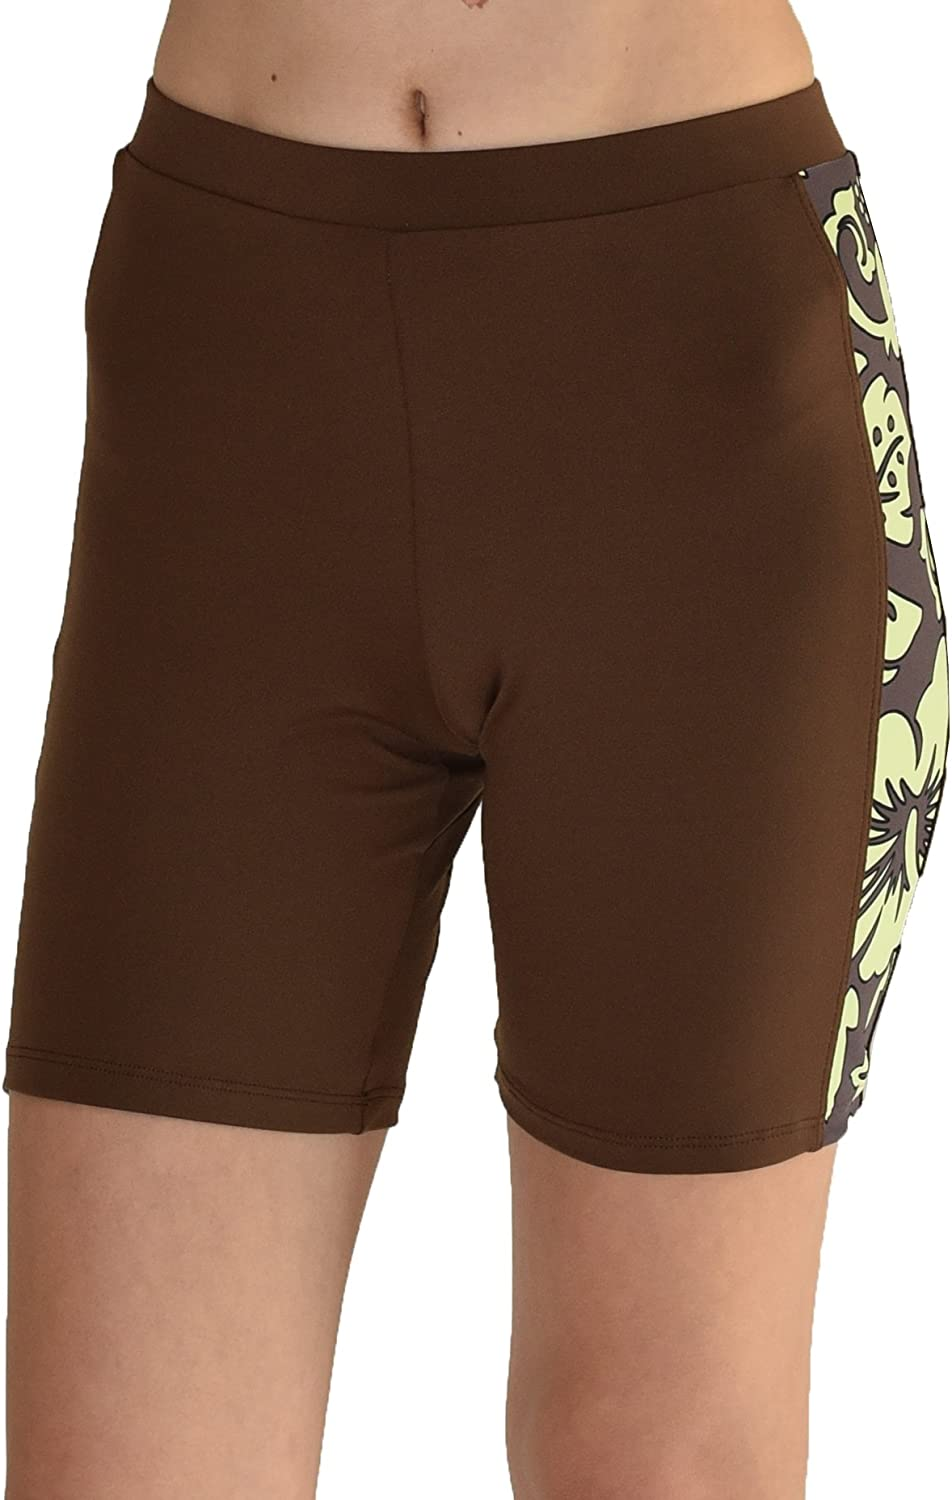 Private Island Hawaii UV Women Rash Guard Skinny Shorts Pants (Large, Brown with Green)